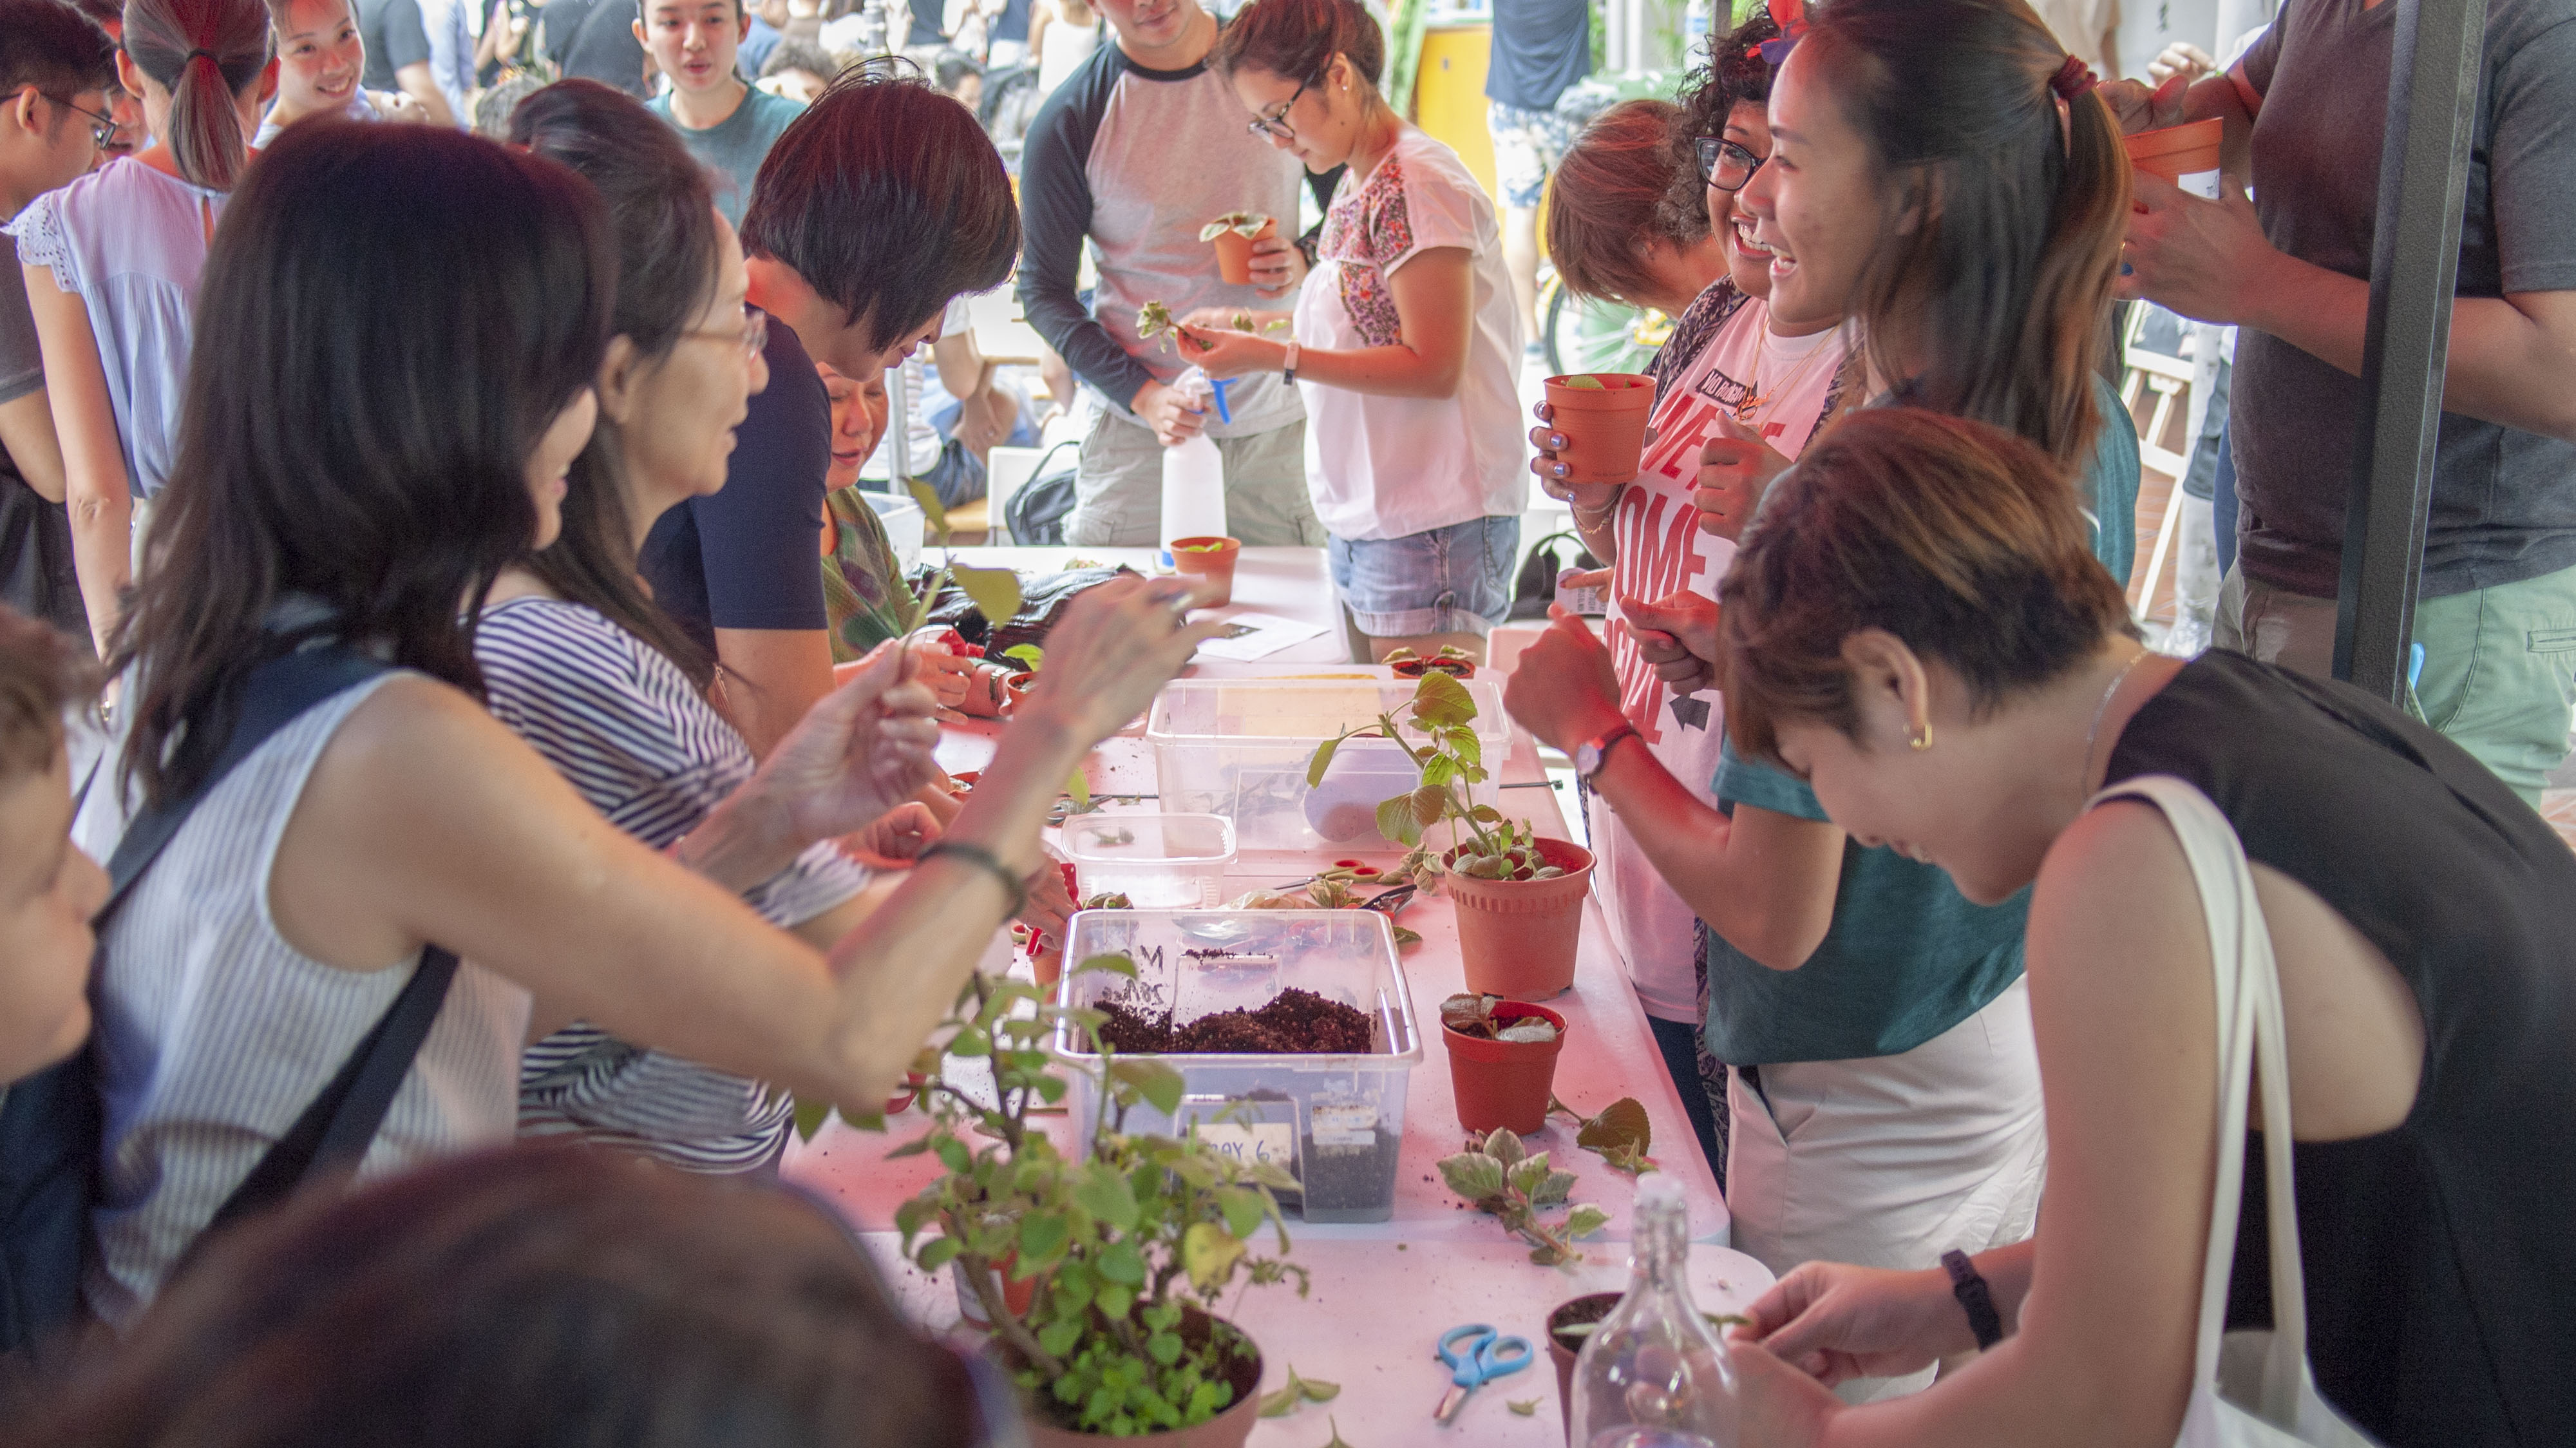 Growing our own: The role we play in ensuring Singapore's food resilience